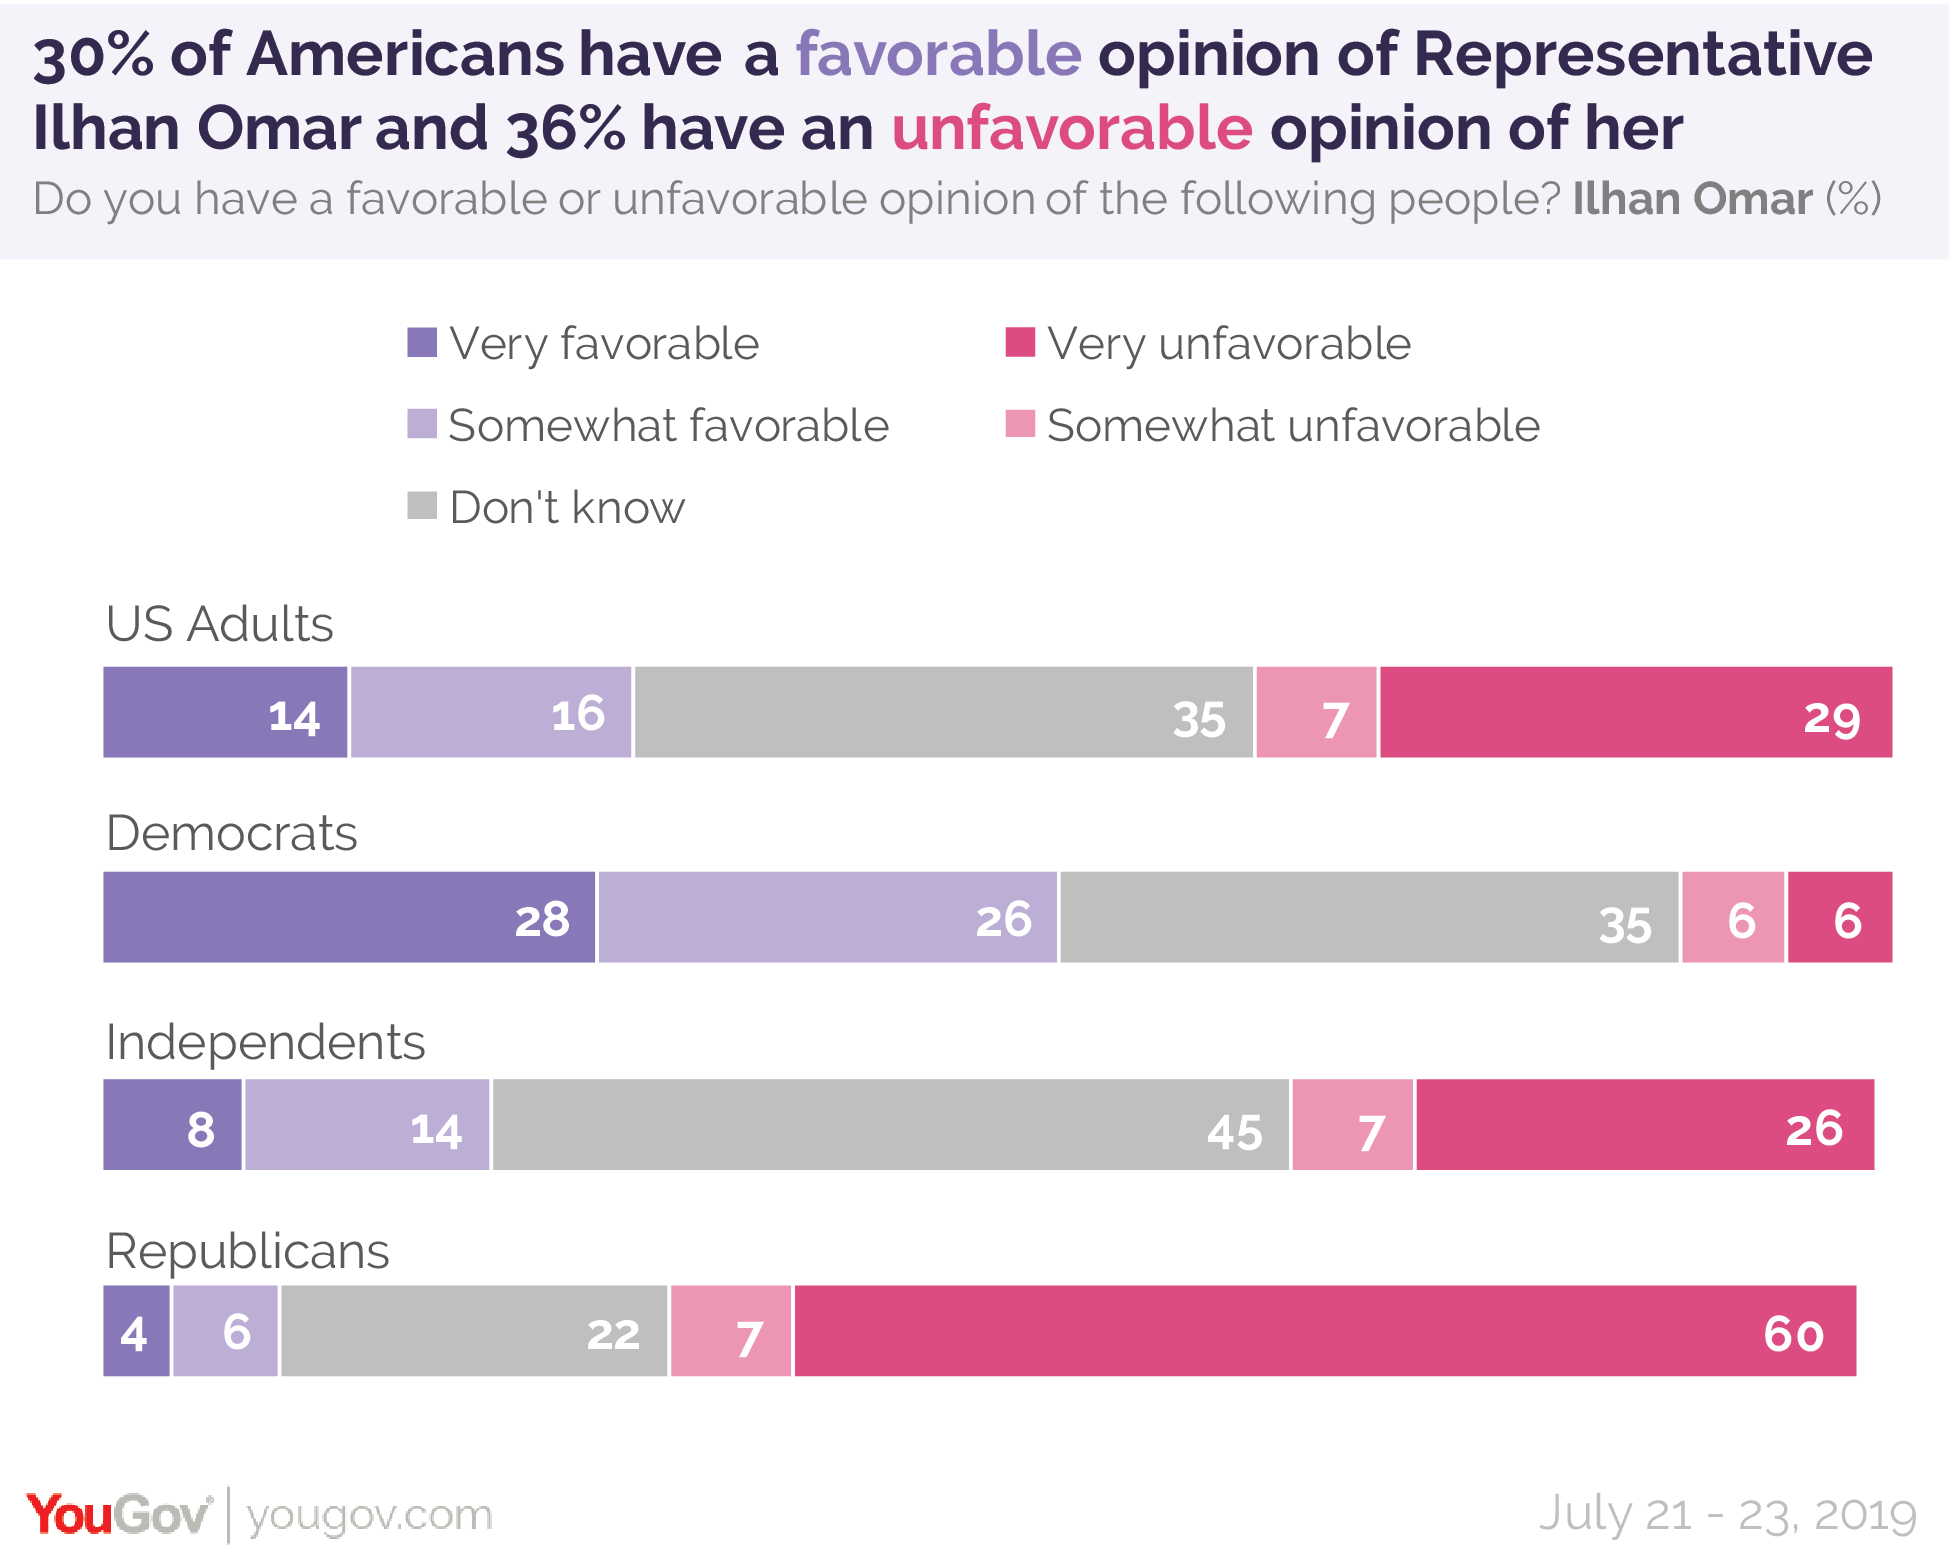 30% of Americans have a favorable opinion of Representative Ilhan Omar and 36% have an unfavorable opinion of her